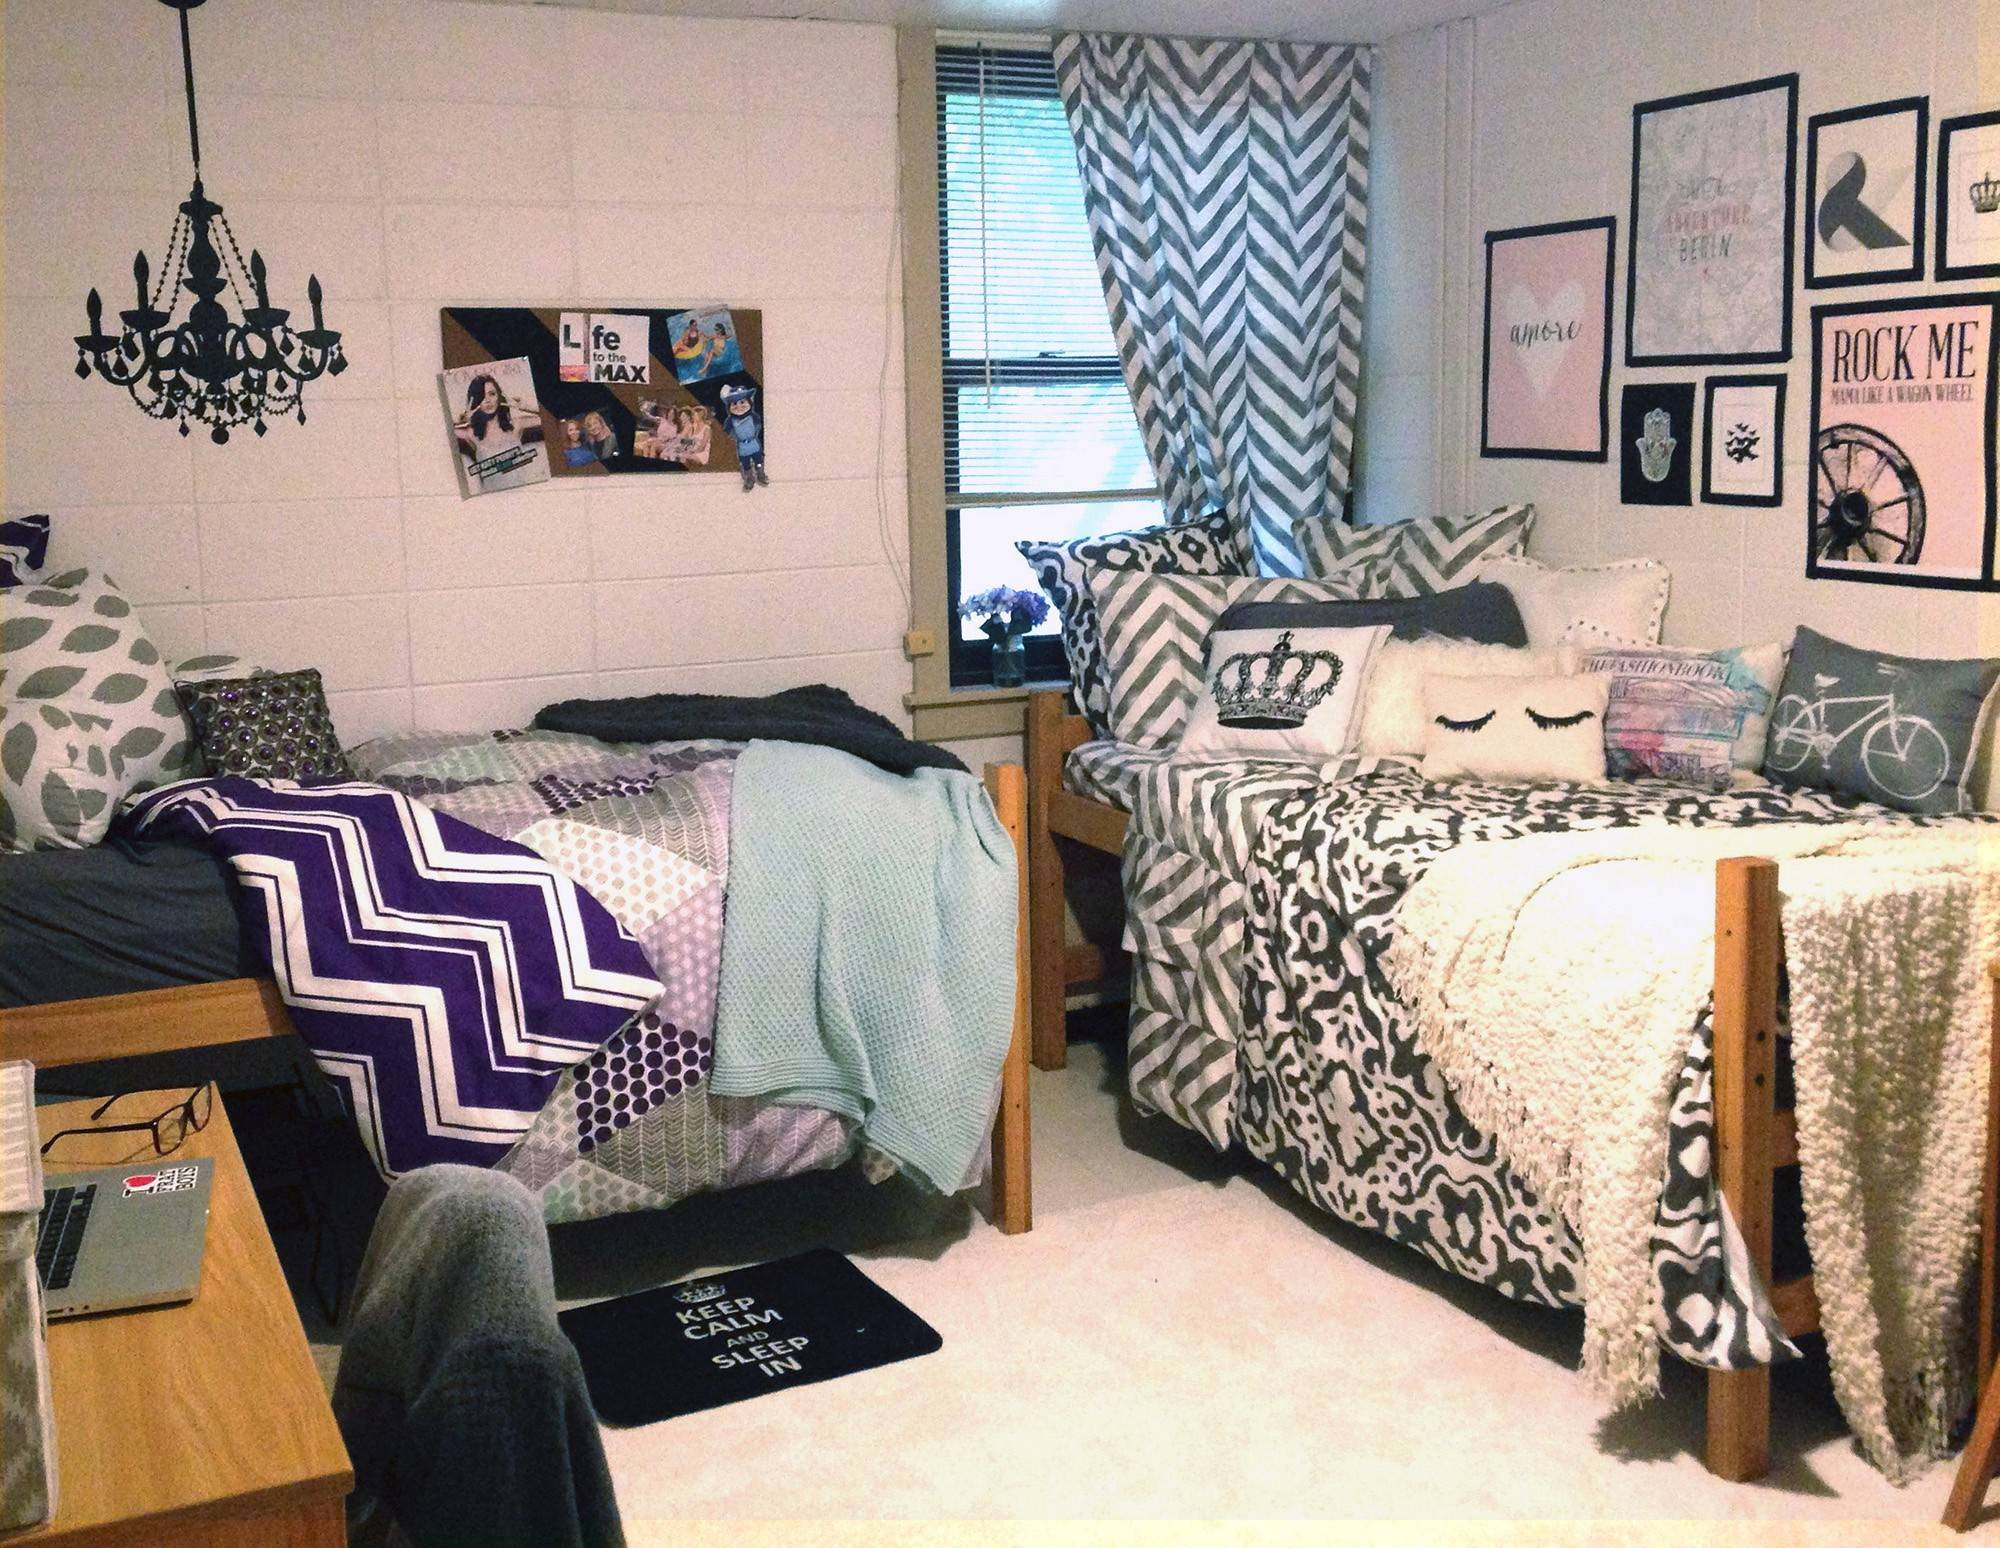 This dormitory room was decorated with help from Dormify.com, an online design business founded by the Zuckerman family of Rockville, Md., after they were underwhelmed with what was available for dorm décor.